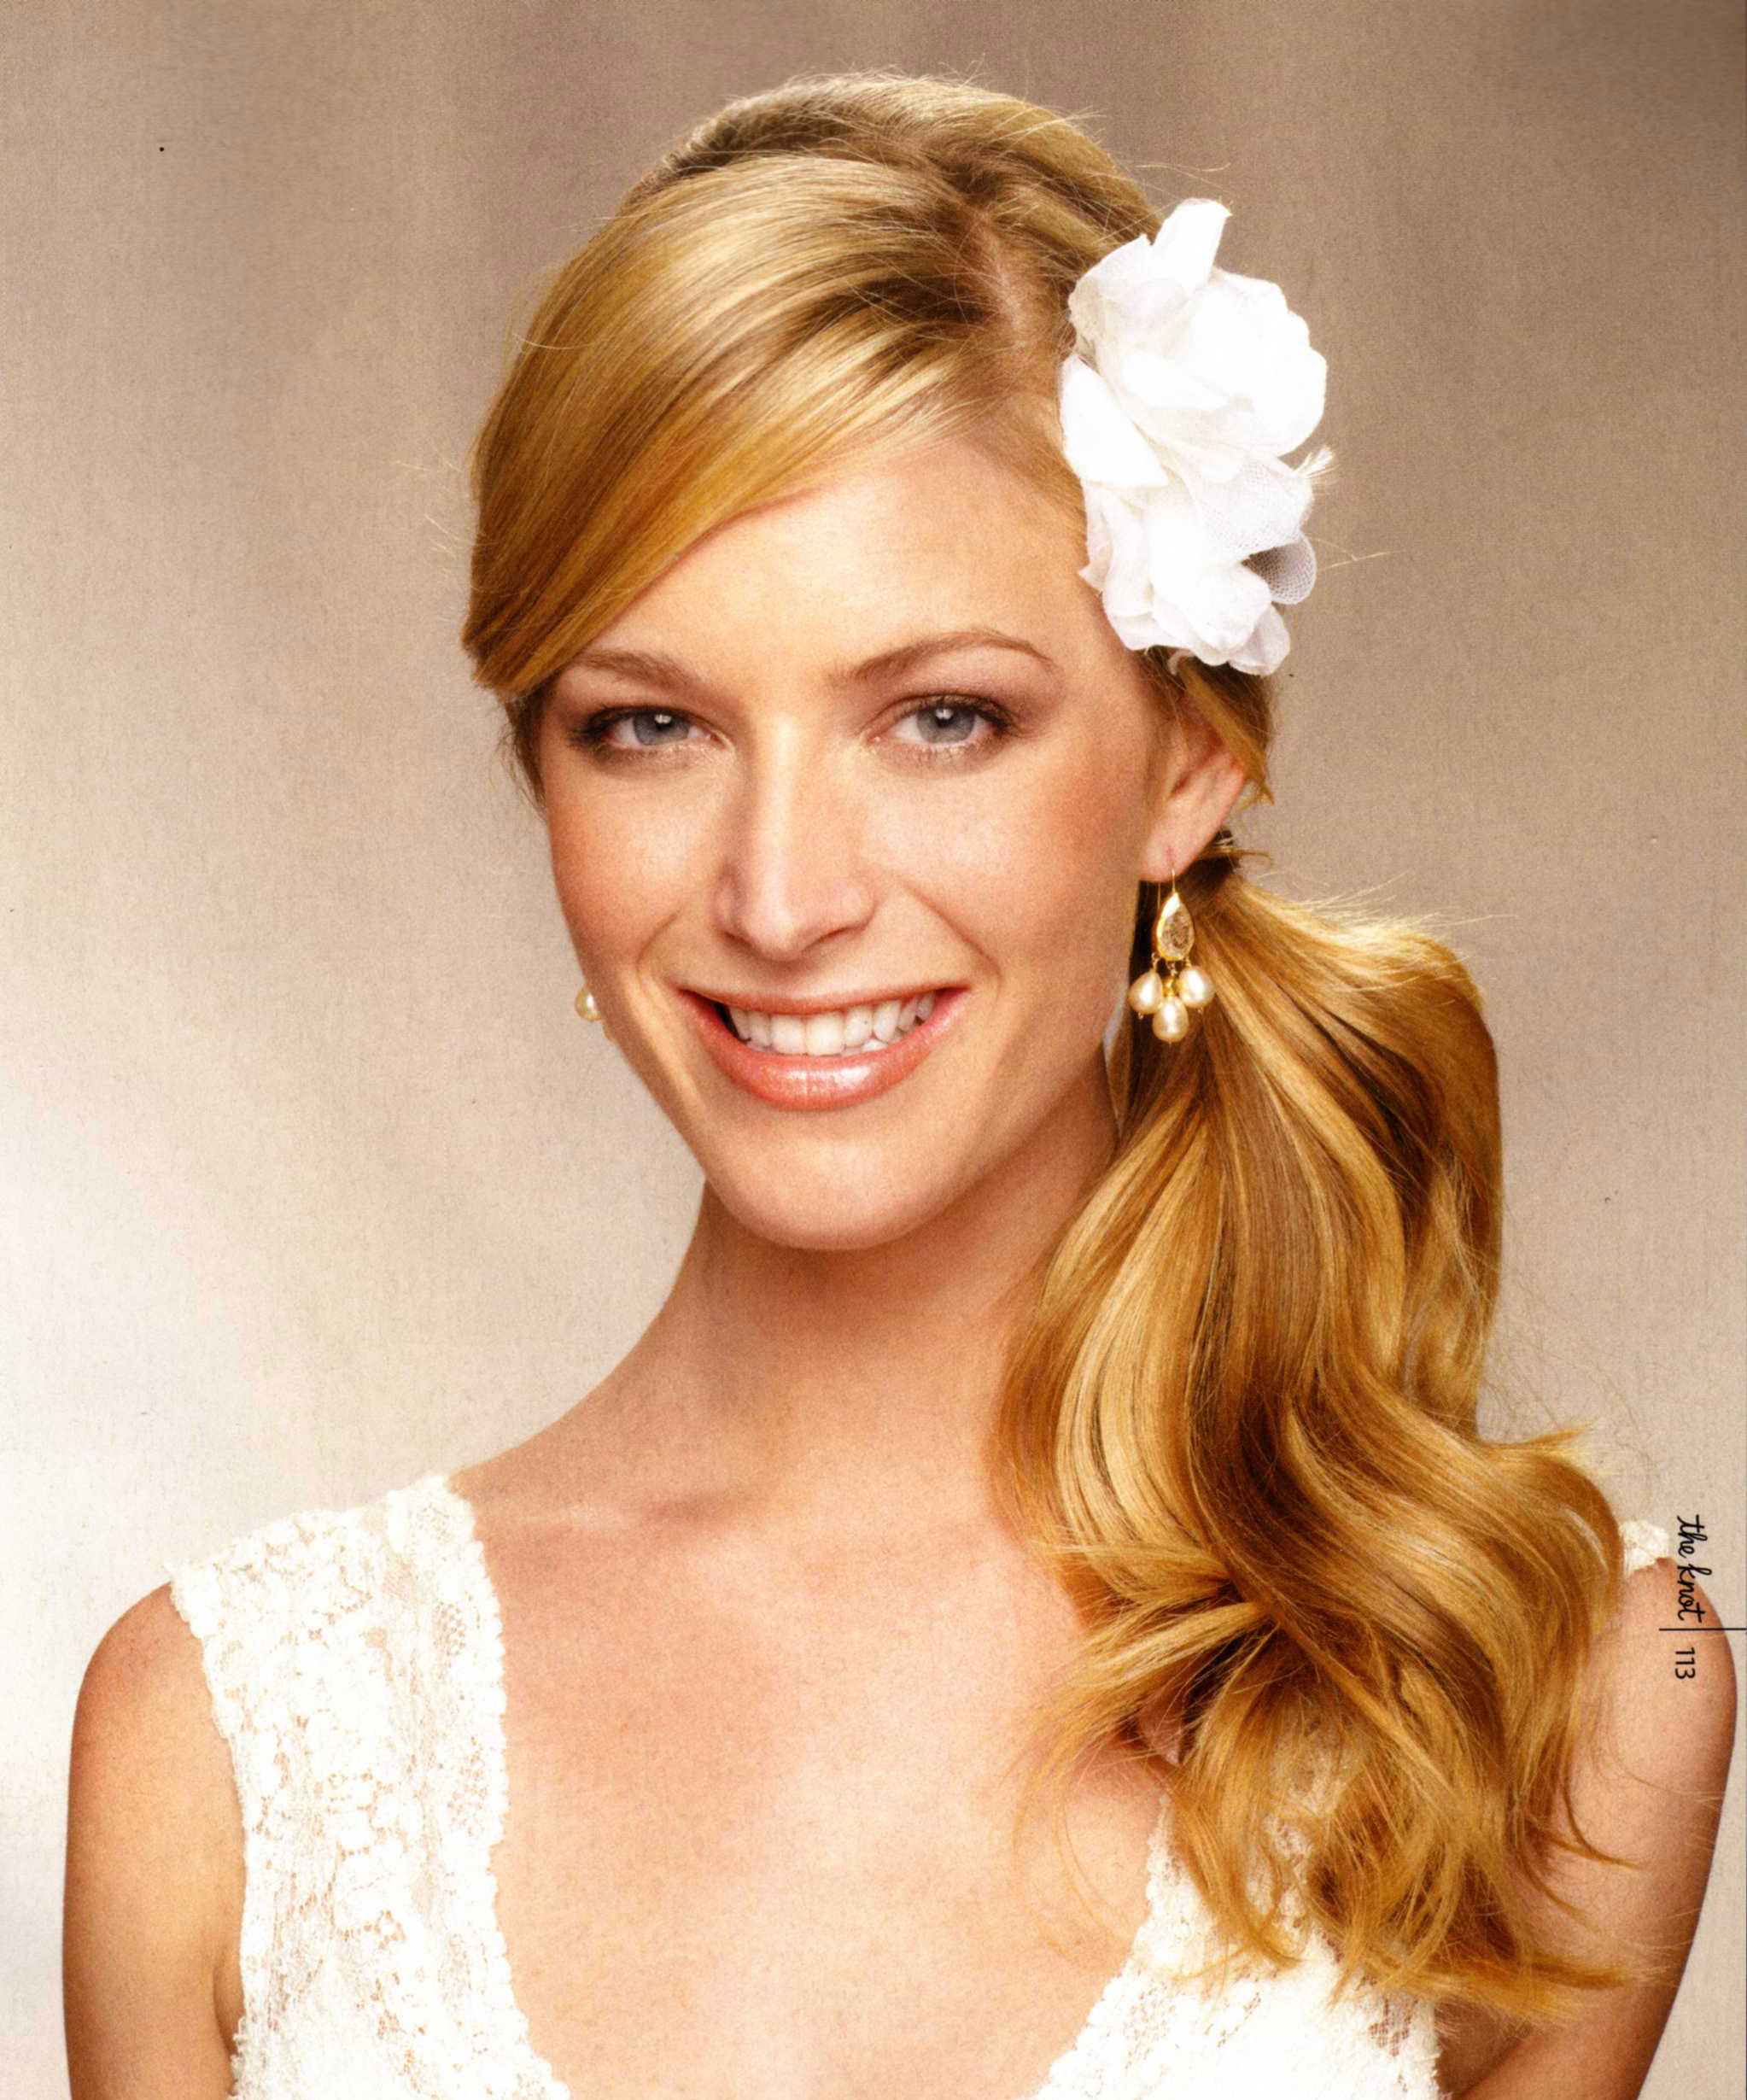 pictures of wedding hairstyles off to the side